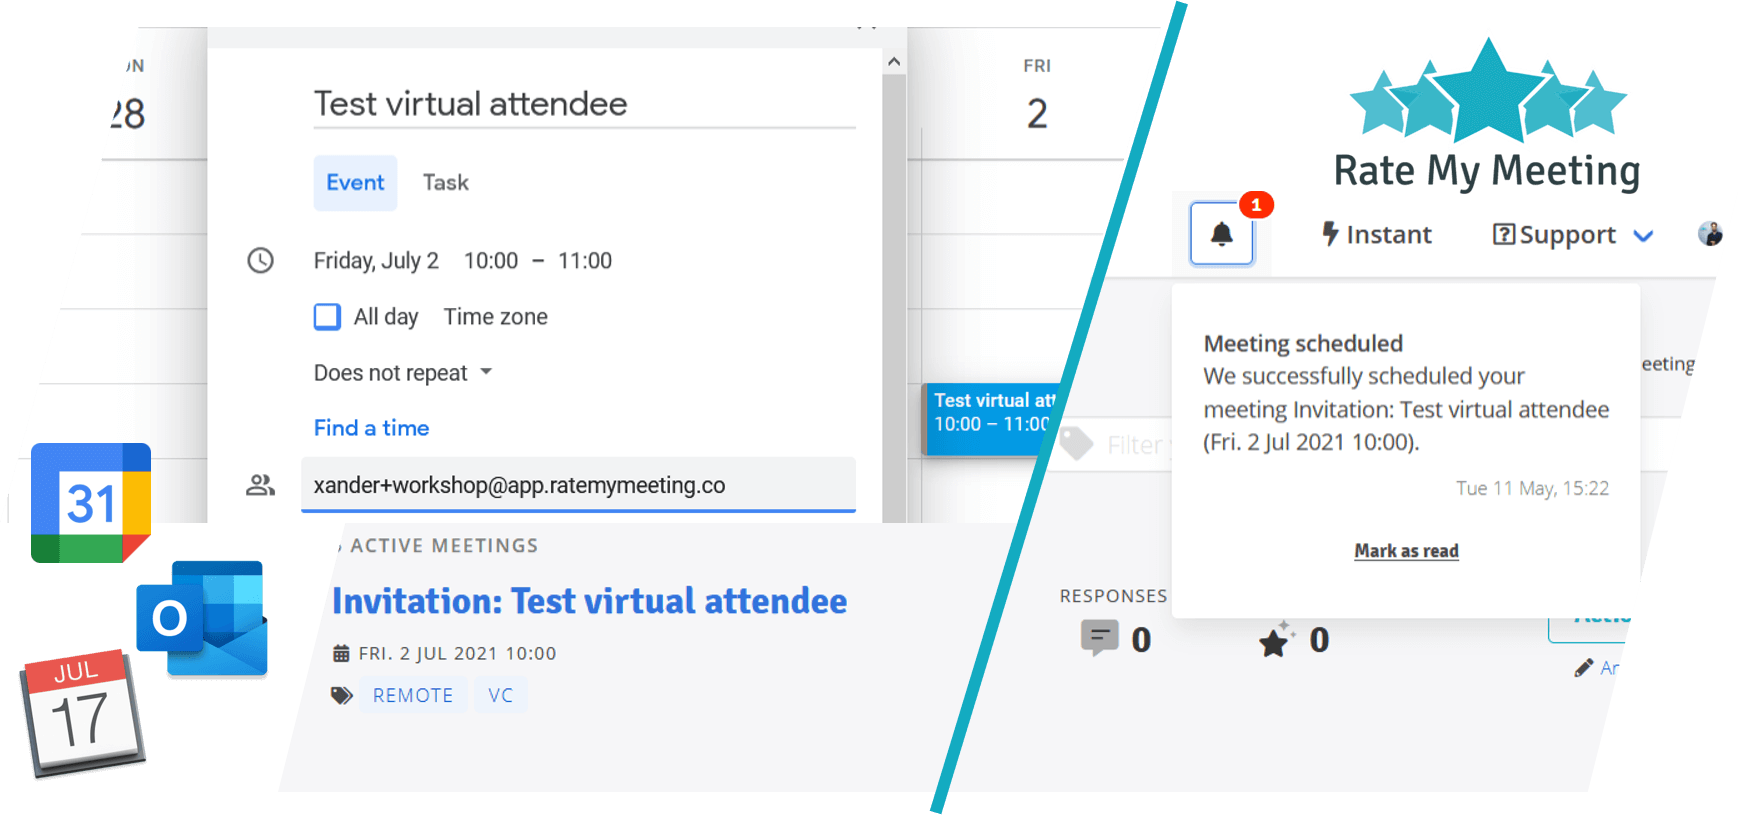 Rate My Meeting integrates seamlessly with Google Calendar and Office 365